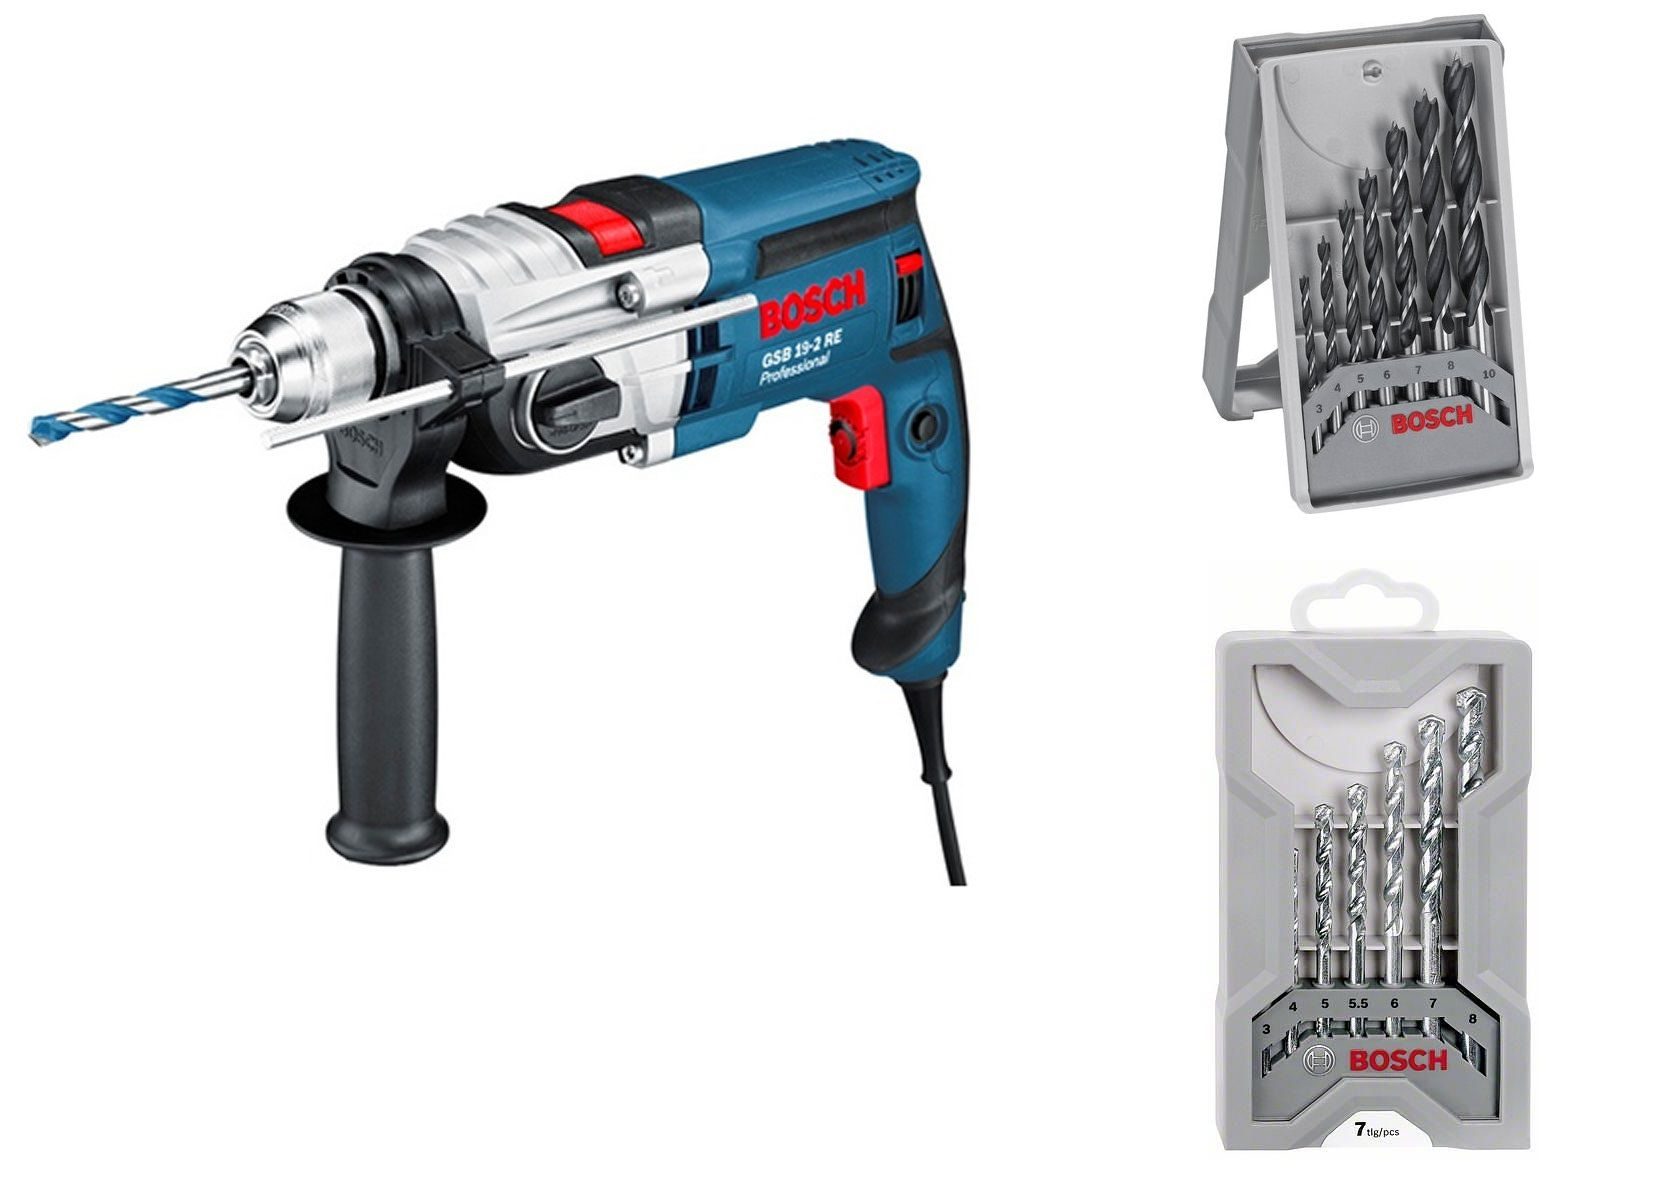 Bosch Borenset Bosch Gsb 19 2 Re Klopboormachine Incl 7 Delig Borenset 2x In Koffer 850w 060117b501